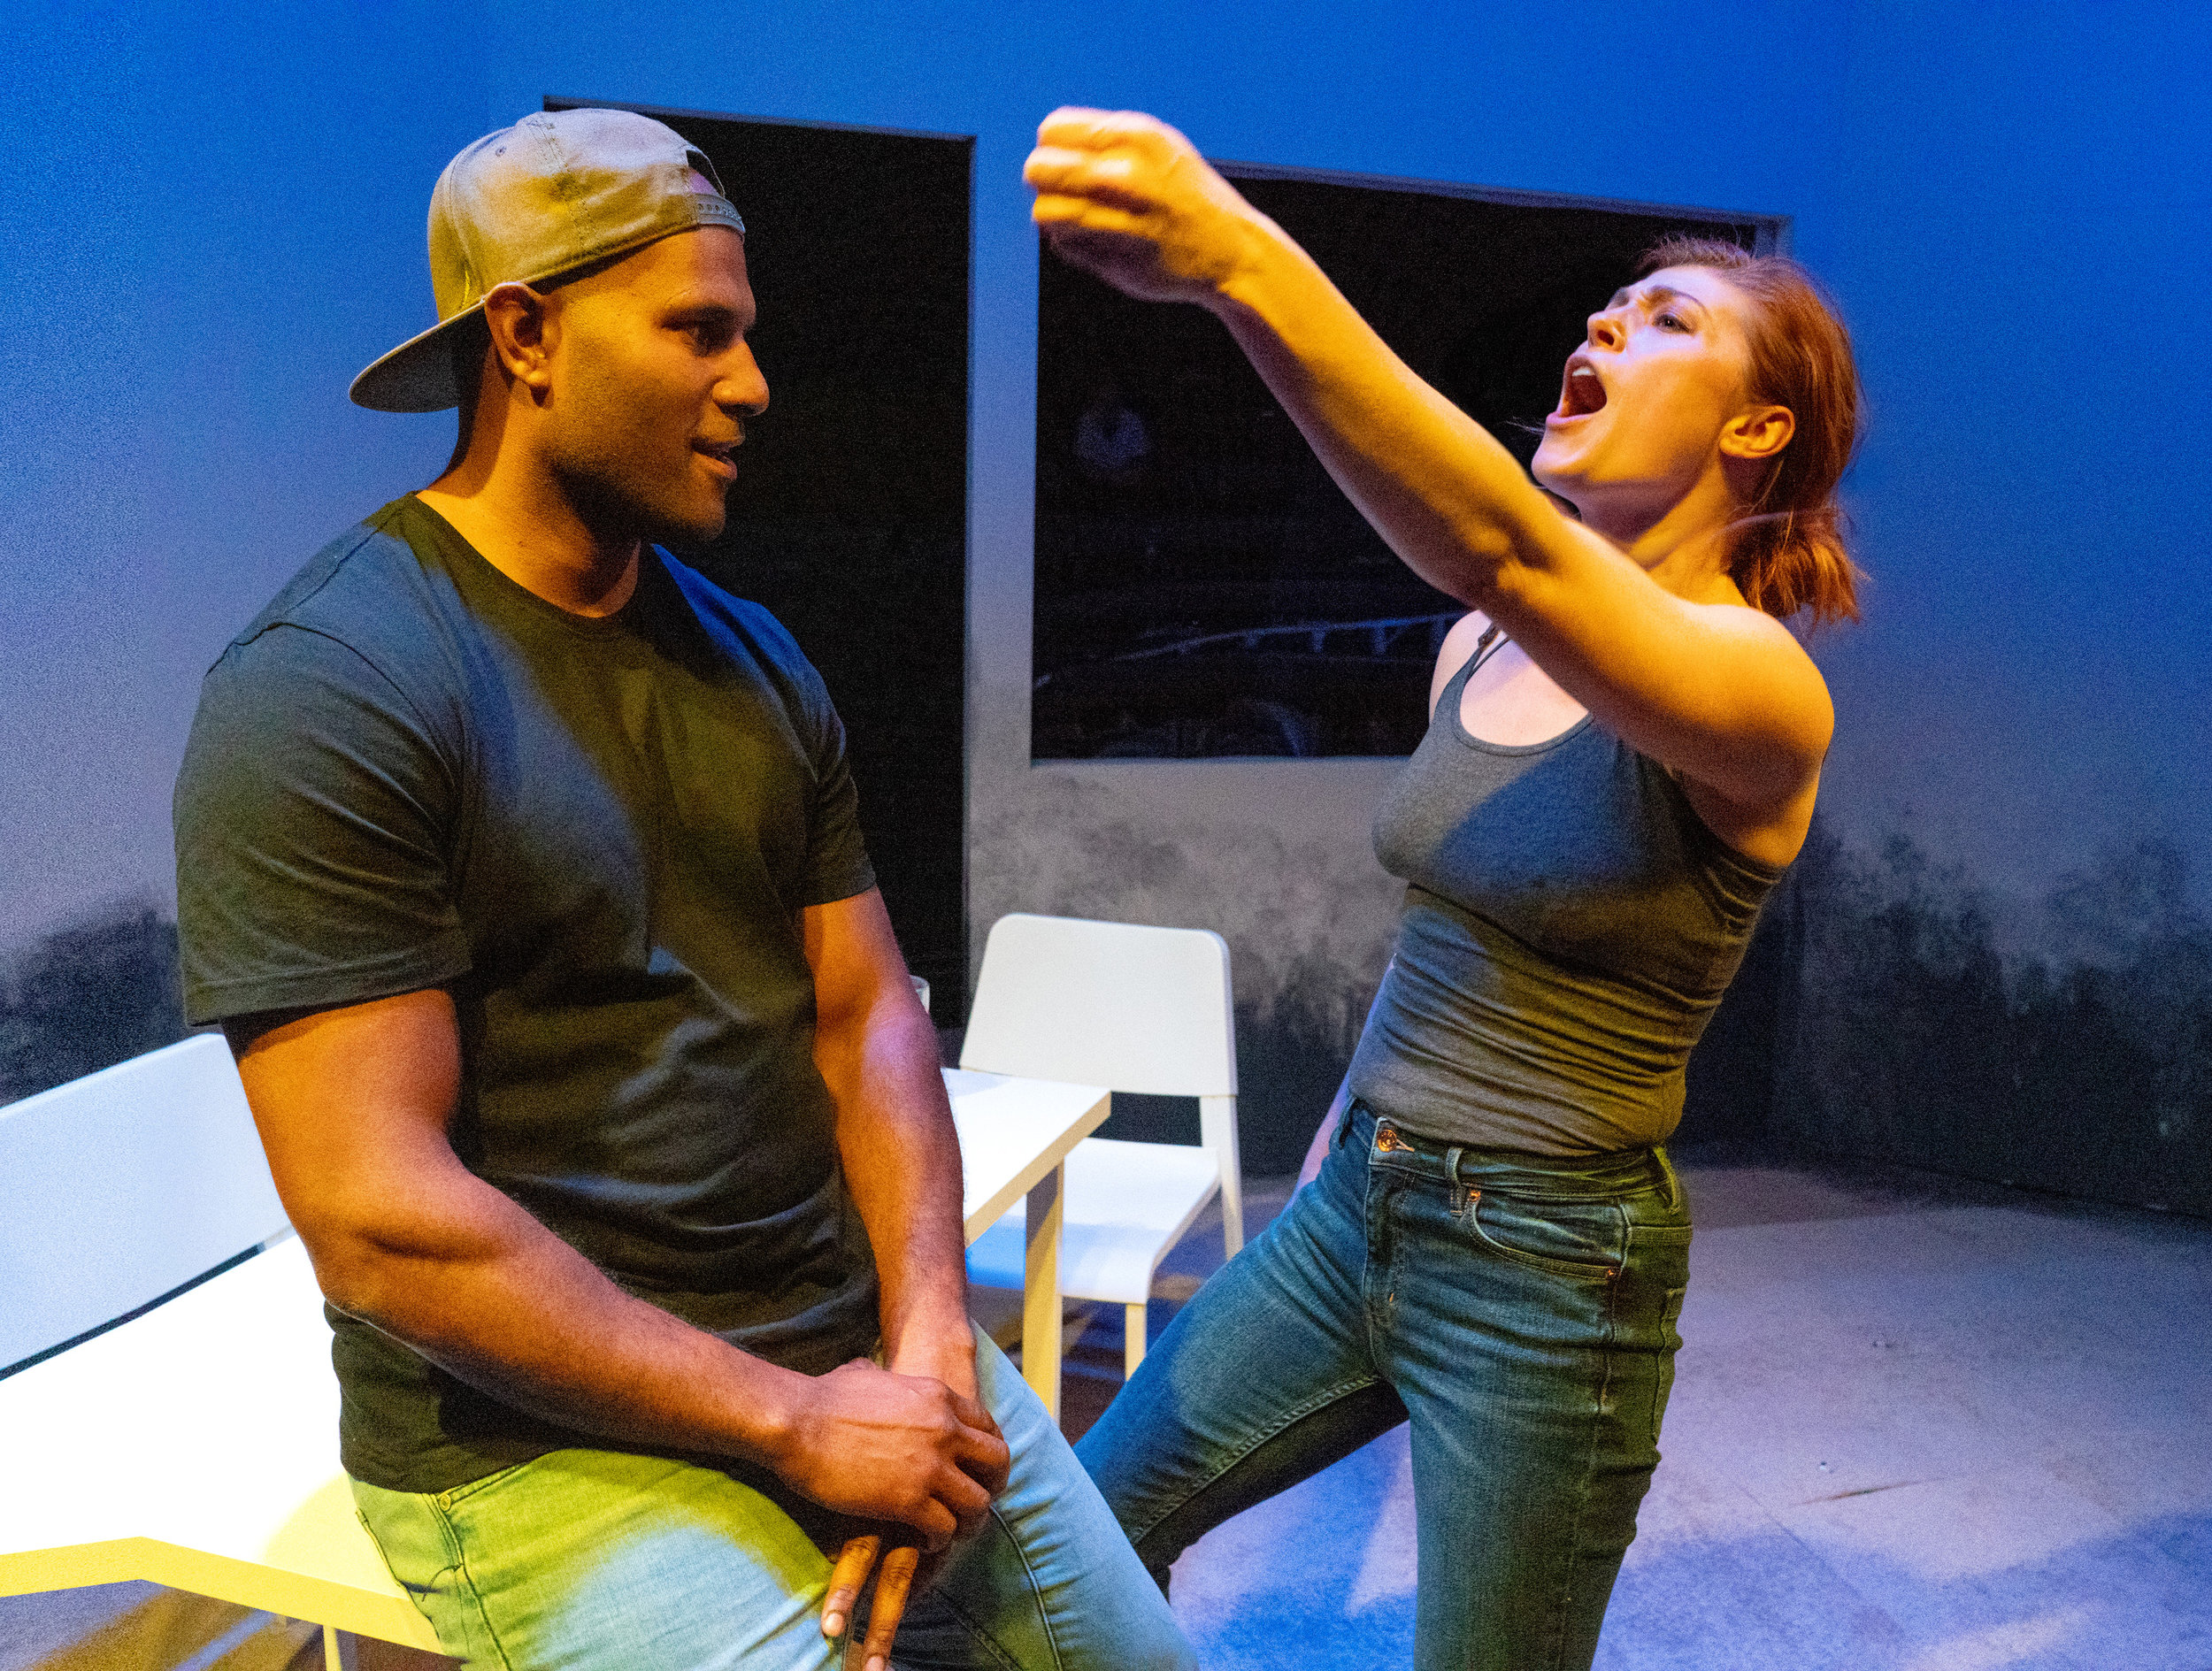 King Of Pigs _ Production Image _ Mick Bani & Ella Scott-Lynch 2 _ Photography by John Marmaras.jpg